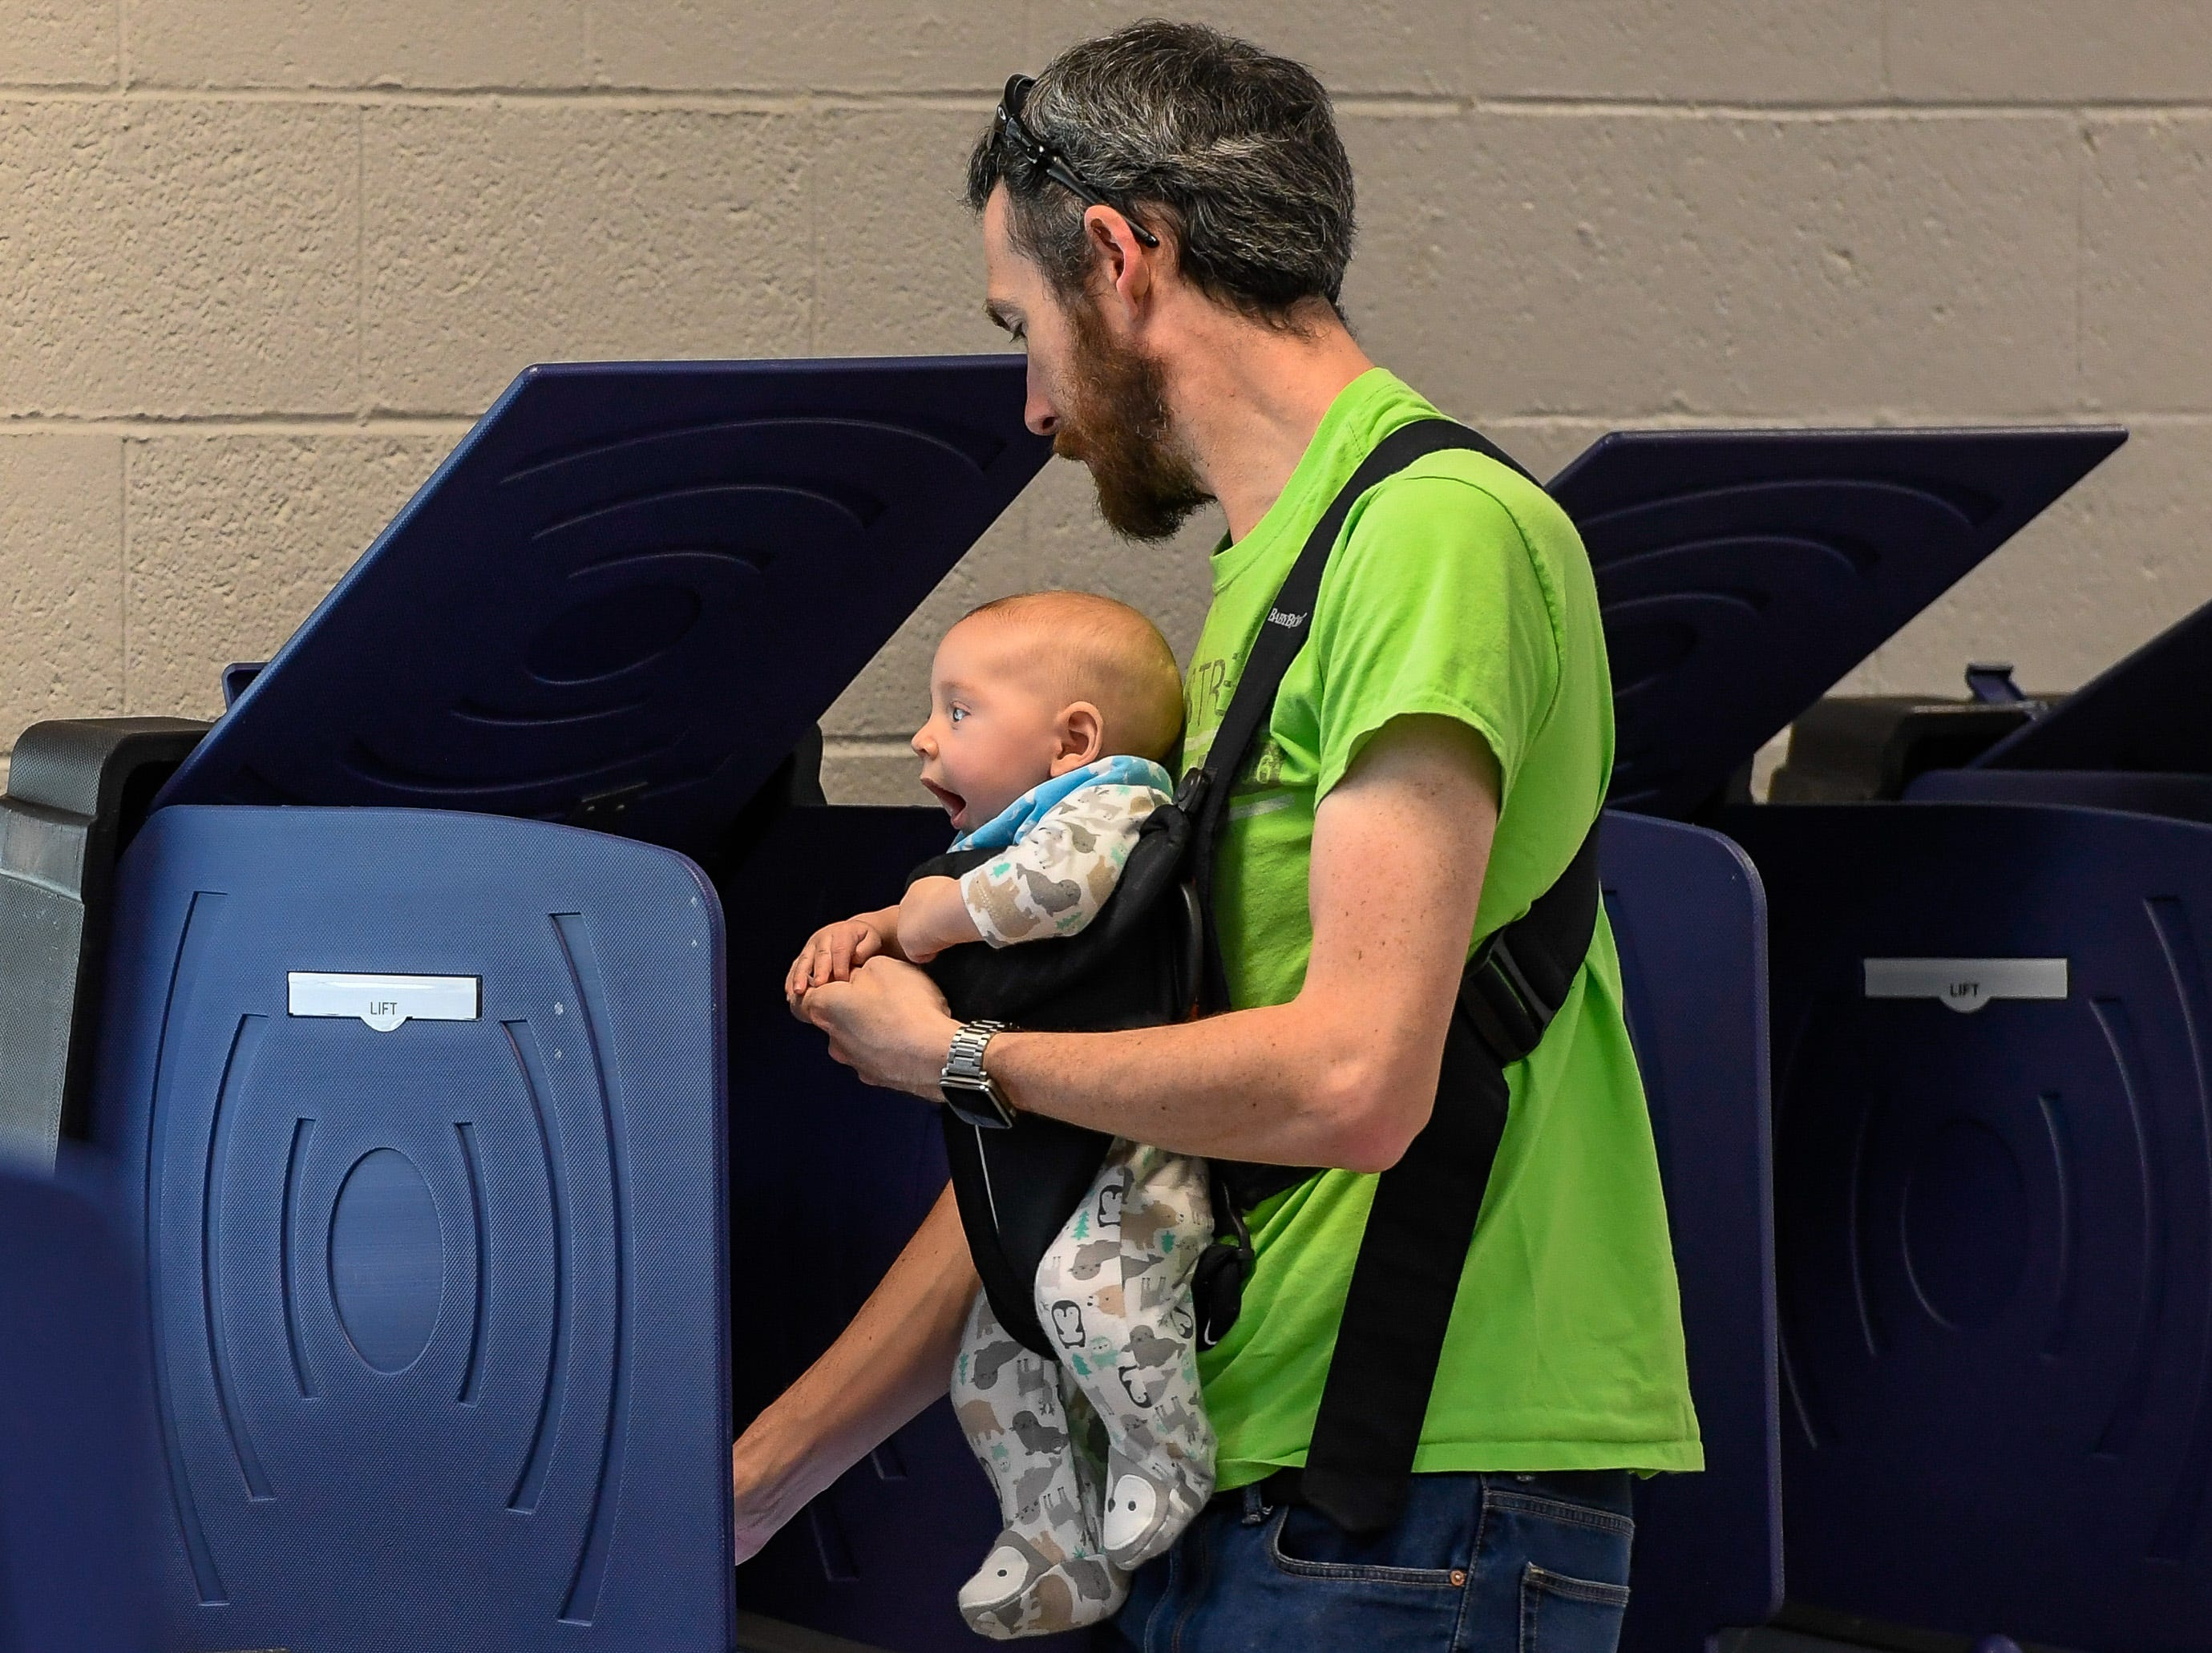 Emmett Williams casts his vote, with a little help from his son Gilbert Stevenson, three months-old, at the Methodist Temple on Lincoln Avenue in Evansville Tuesday, May 7, 2019.